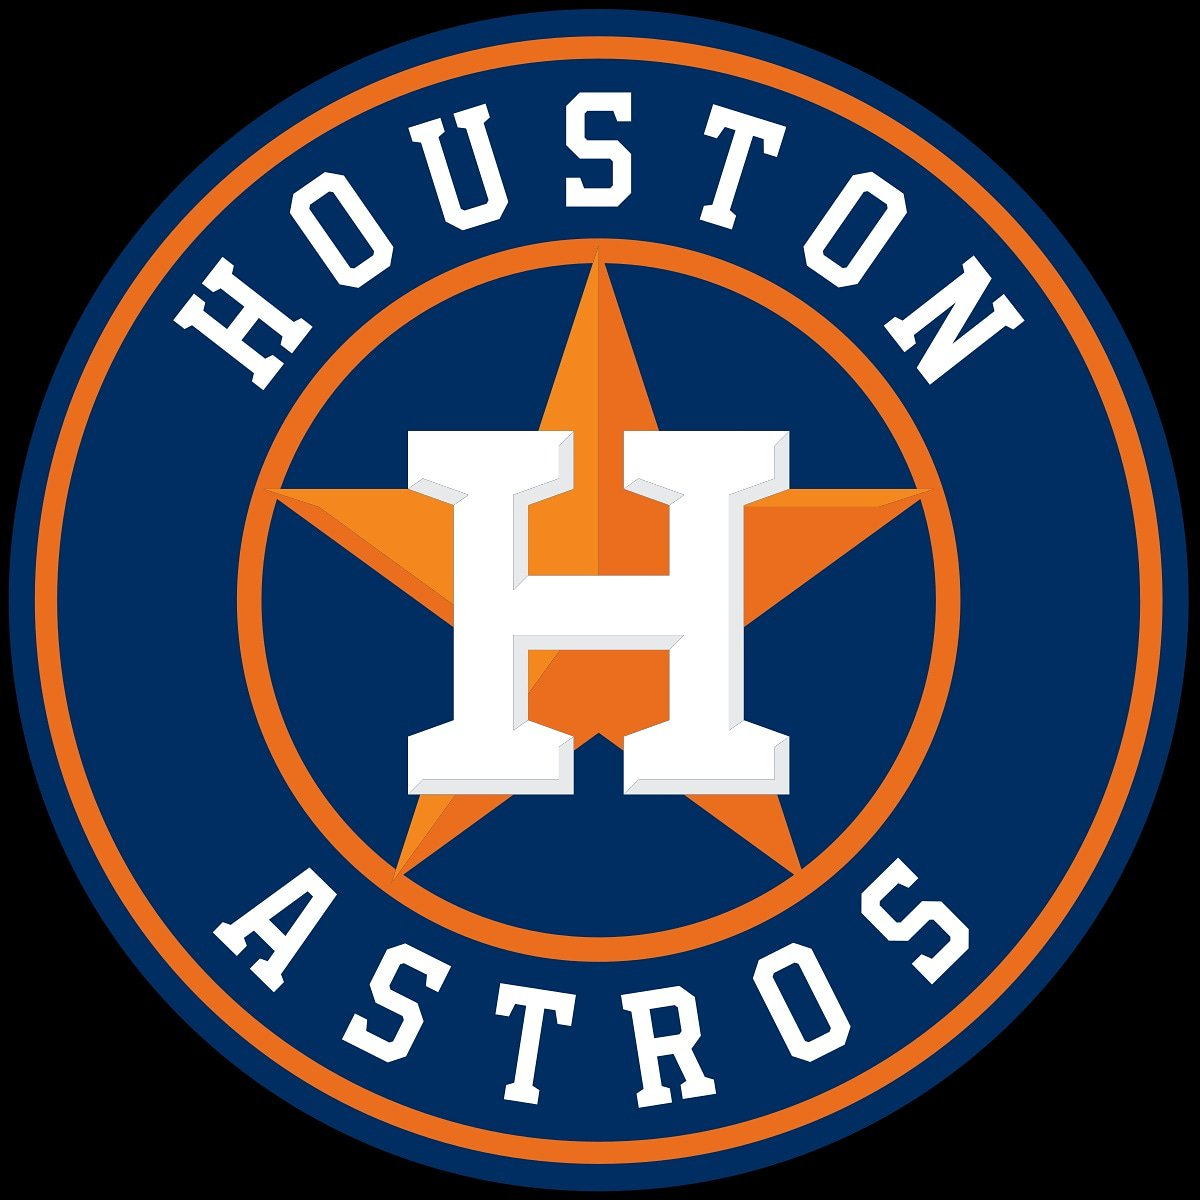 Congratulations to our Houston Astros for their big win tonight. Now, let's take down the Nationals. Go Astros!